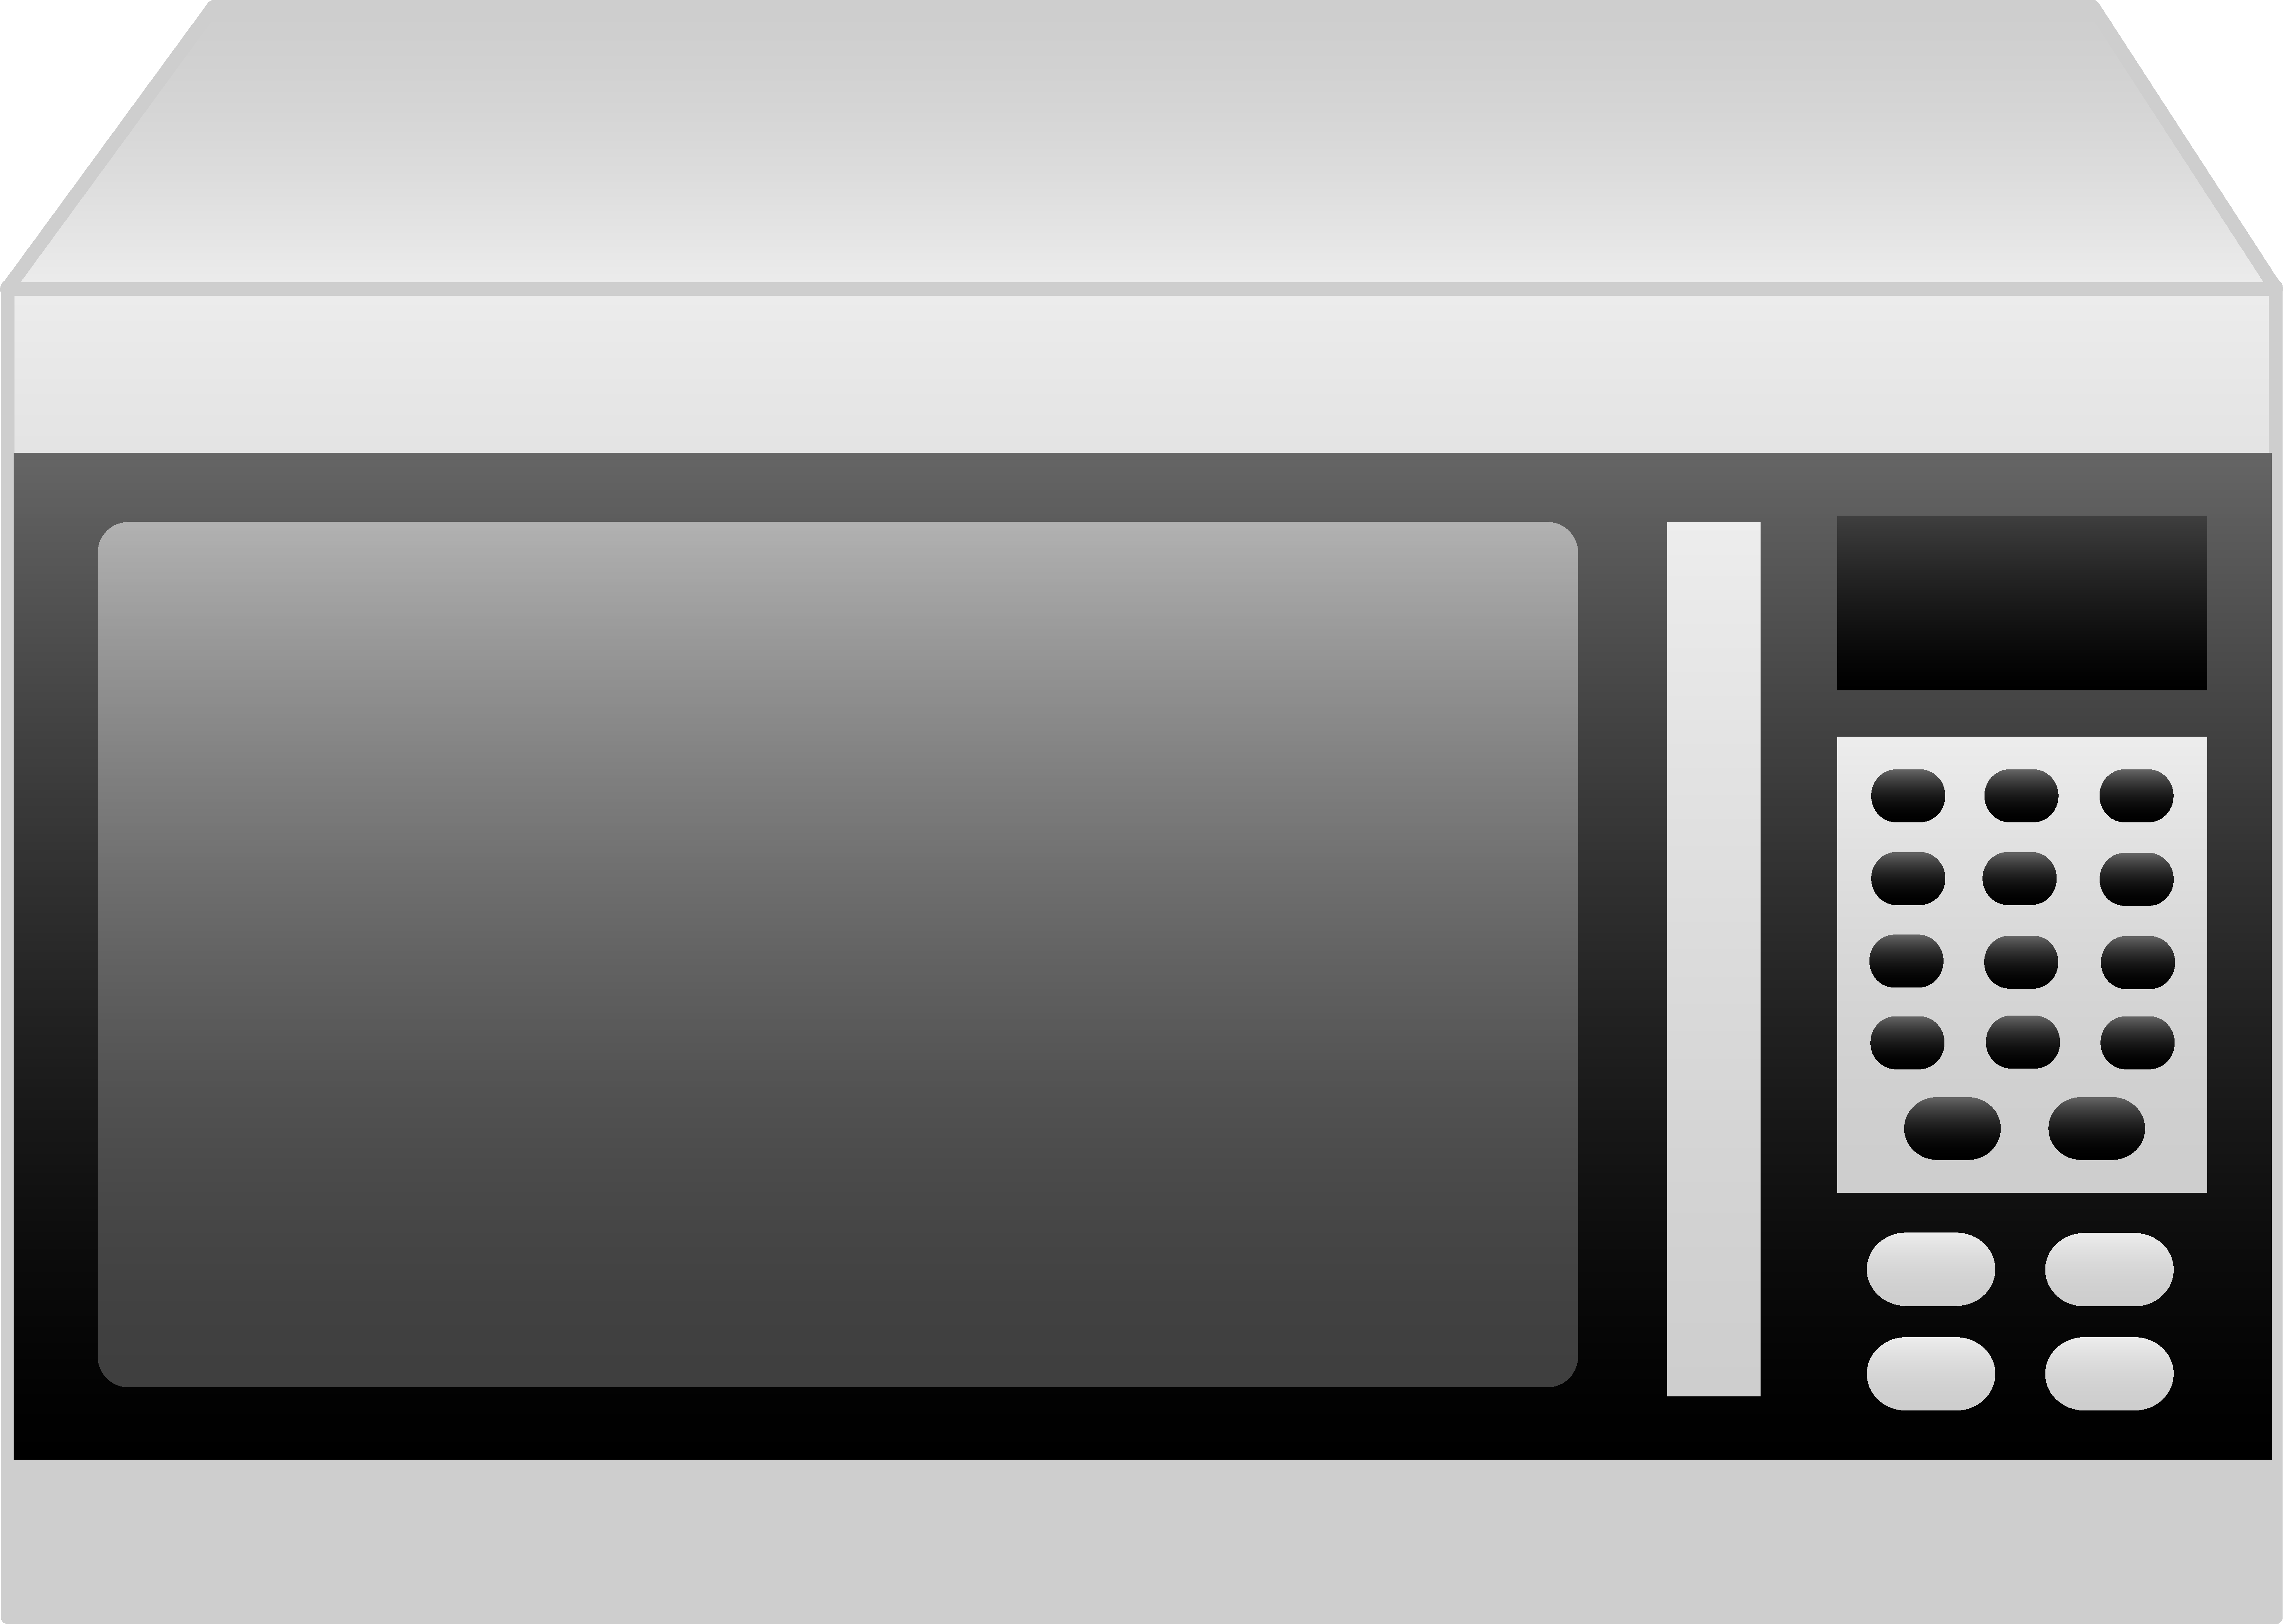 Microwave clipart. Oven design free clip